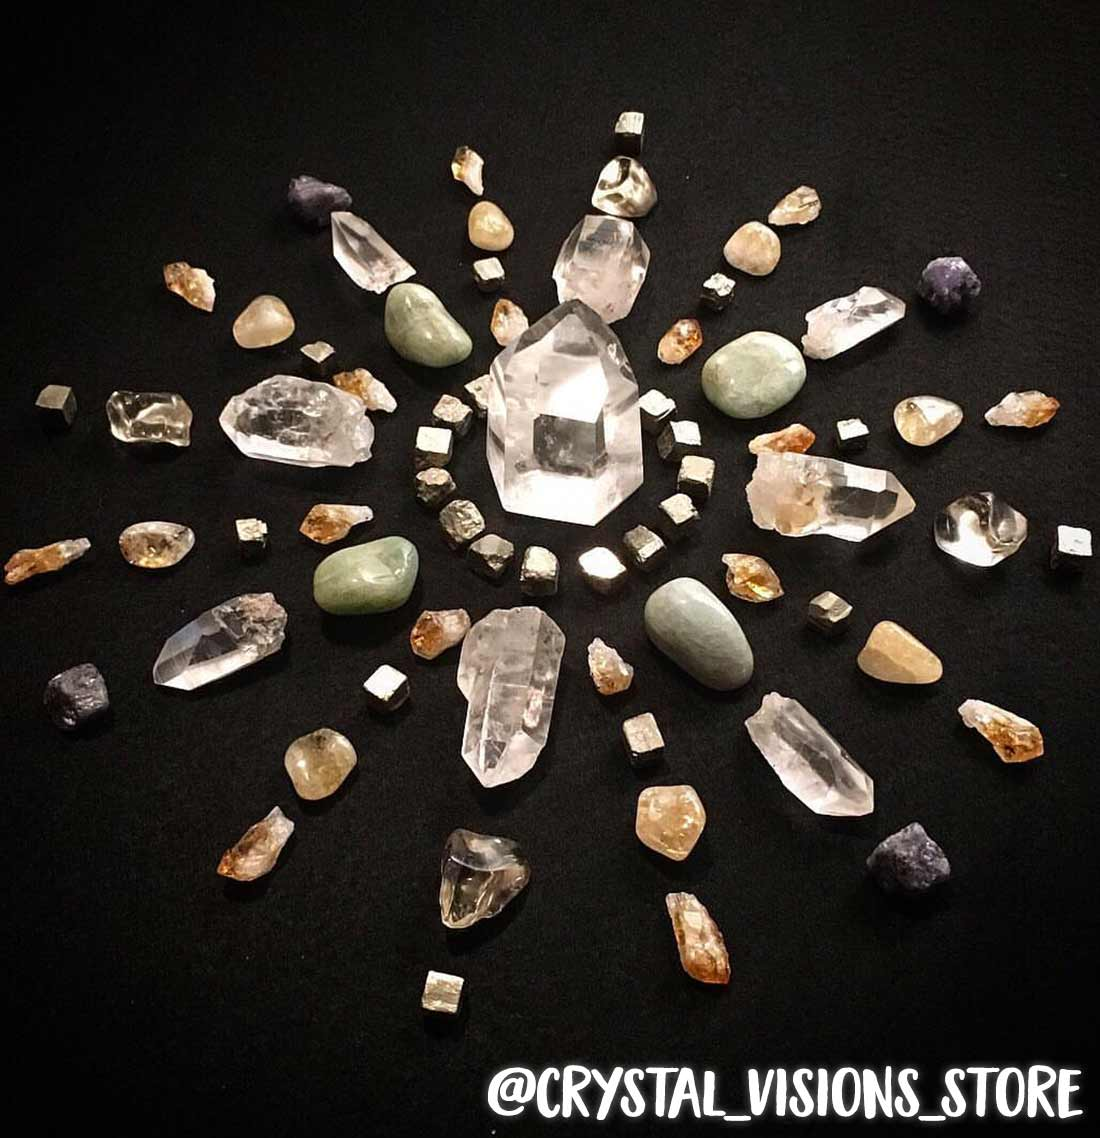 Beautiful crystal grid by @crystal_visions_store